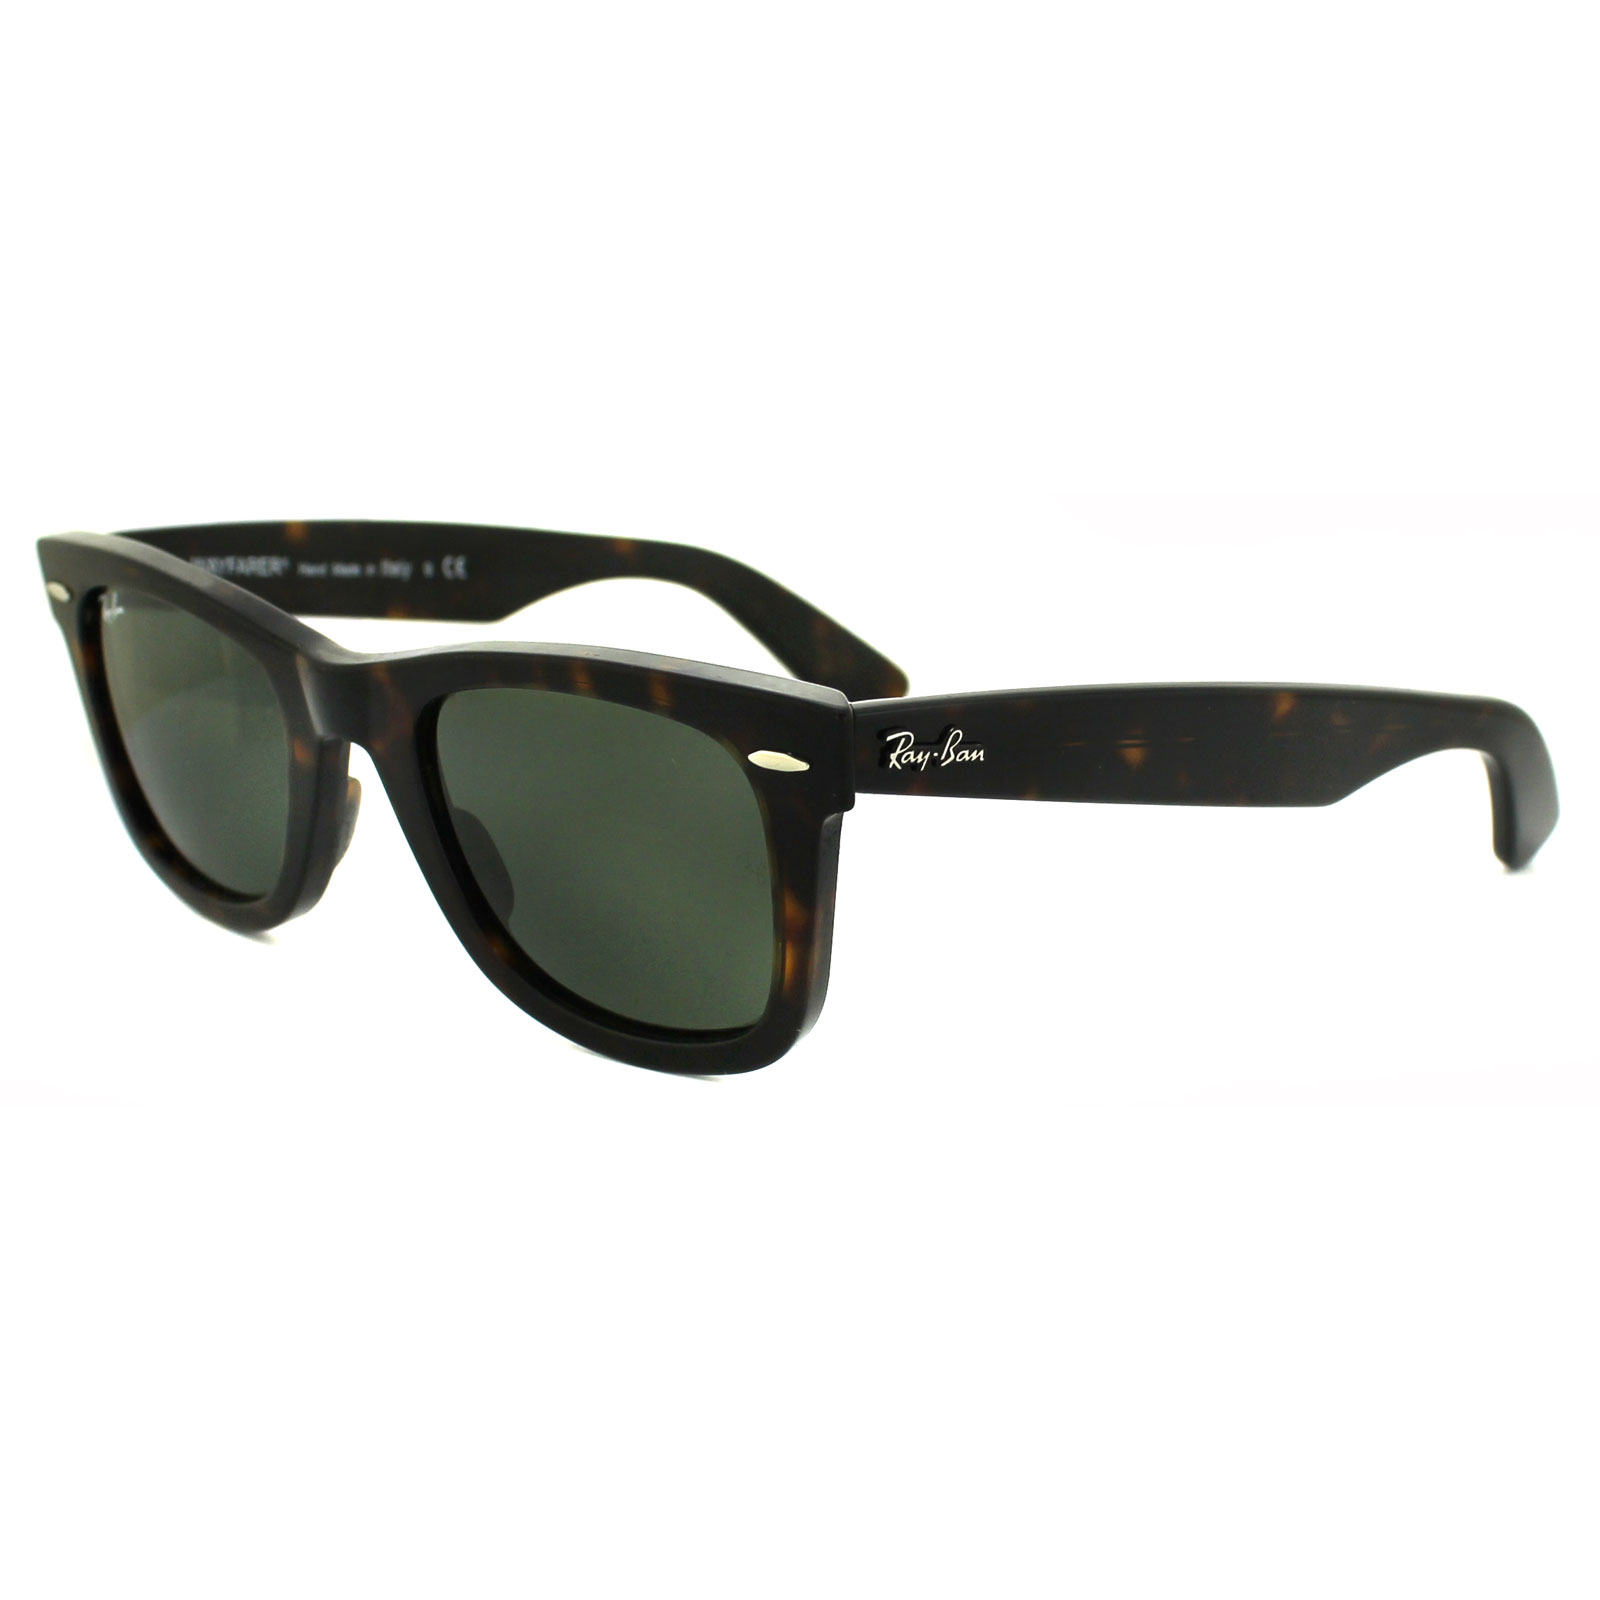 b9f32428fc973 Ray-Ban Sunglasses Wayfarer 2140 902 Tortoise Green G-15 Small 47mm  Thumbnail 1 ...